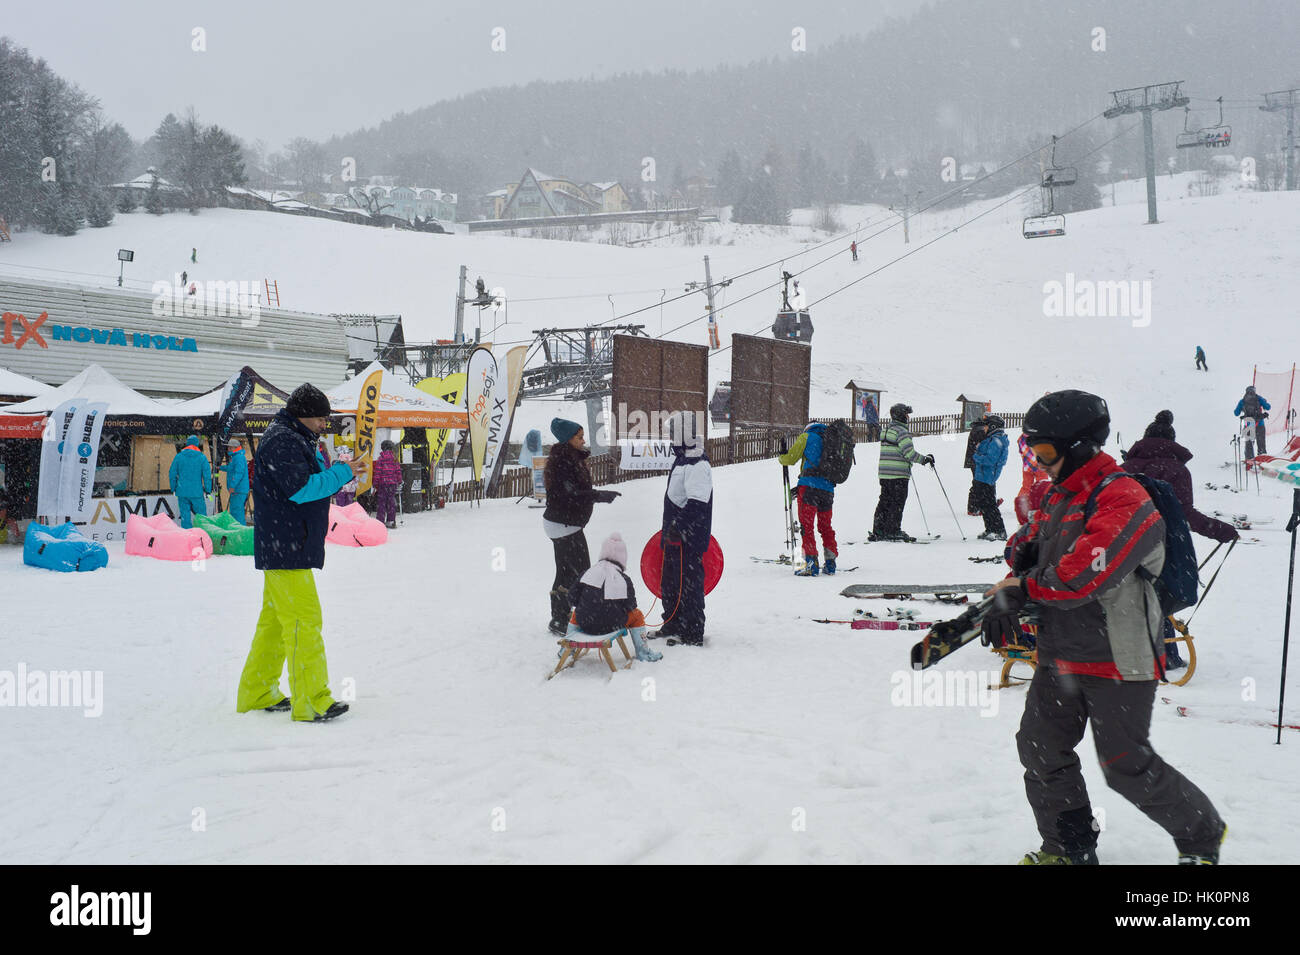 Donovaley Ski resort in Mala Fatra National Park Slovakia. - Stock Image